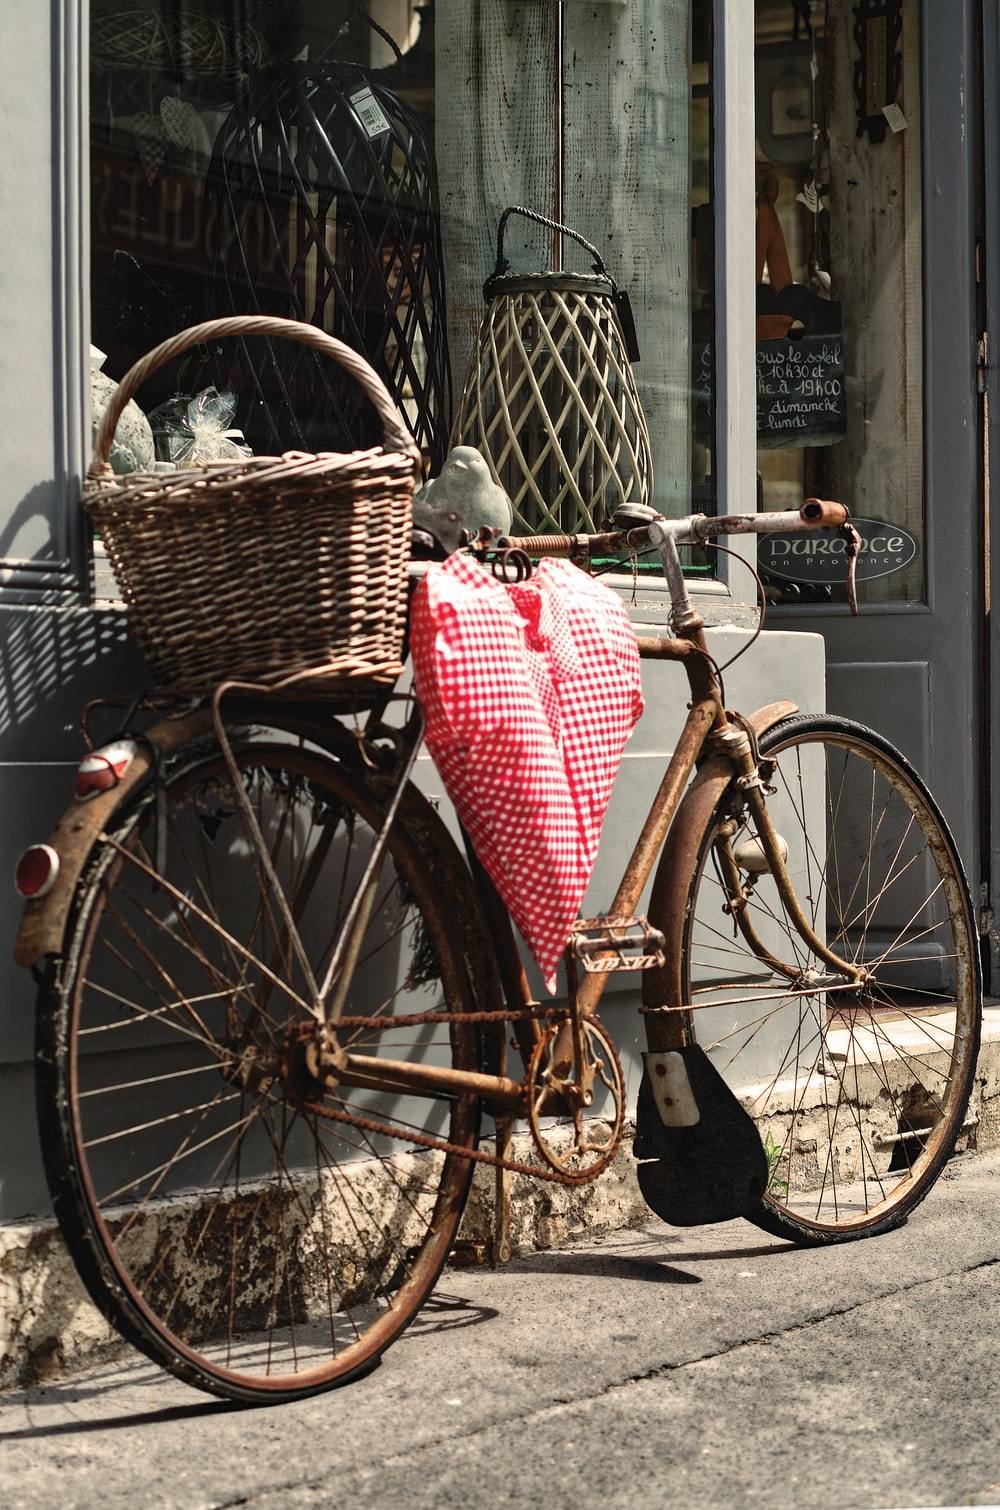 brown city bike with red and white plaid textile